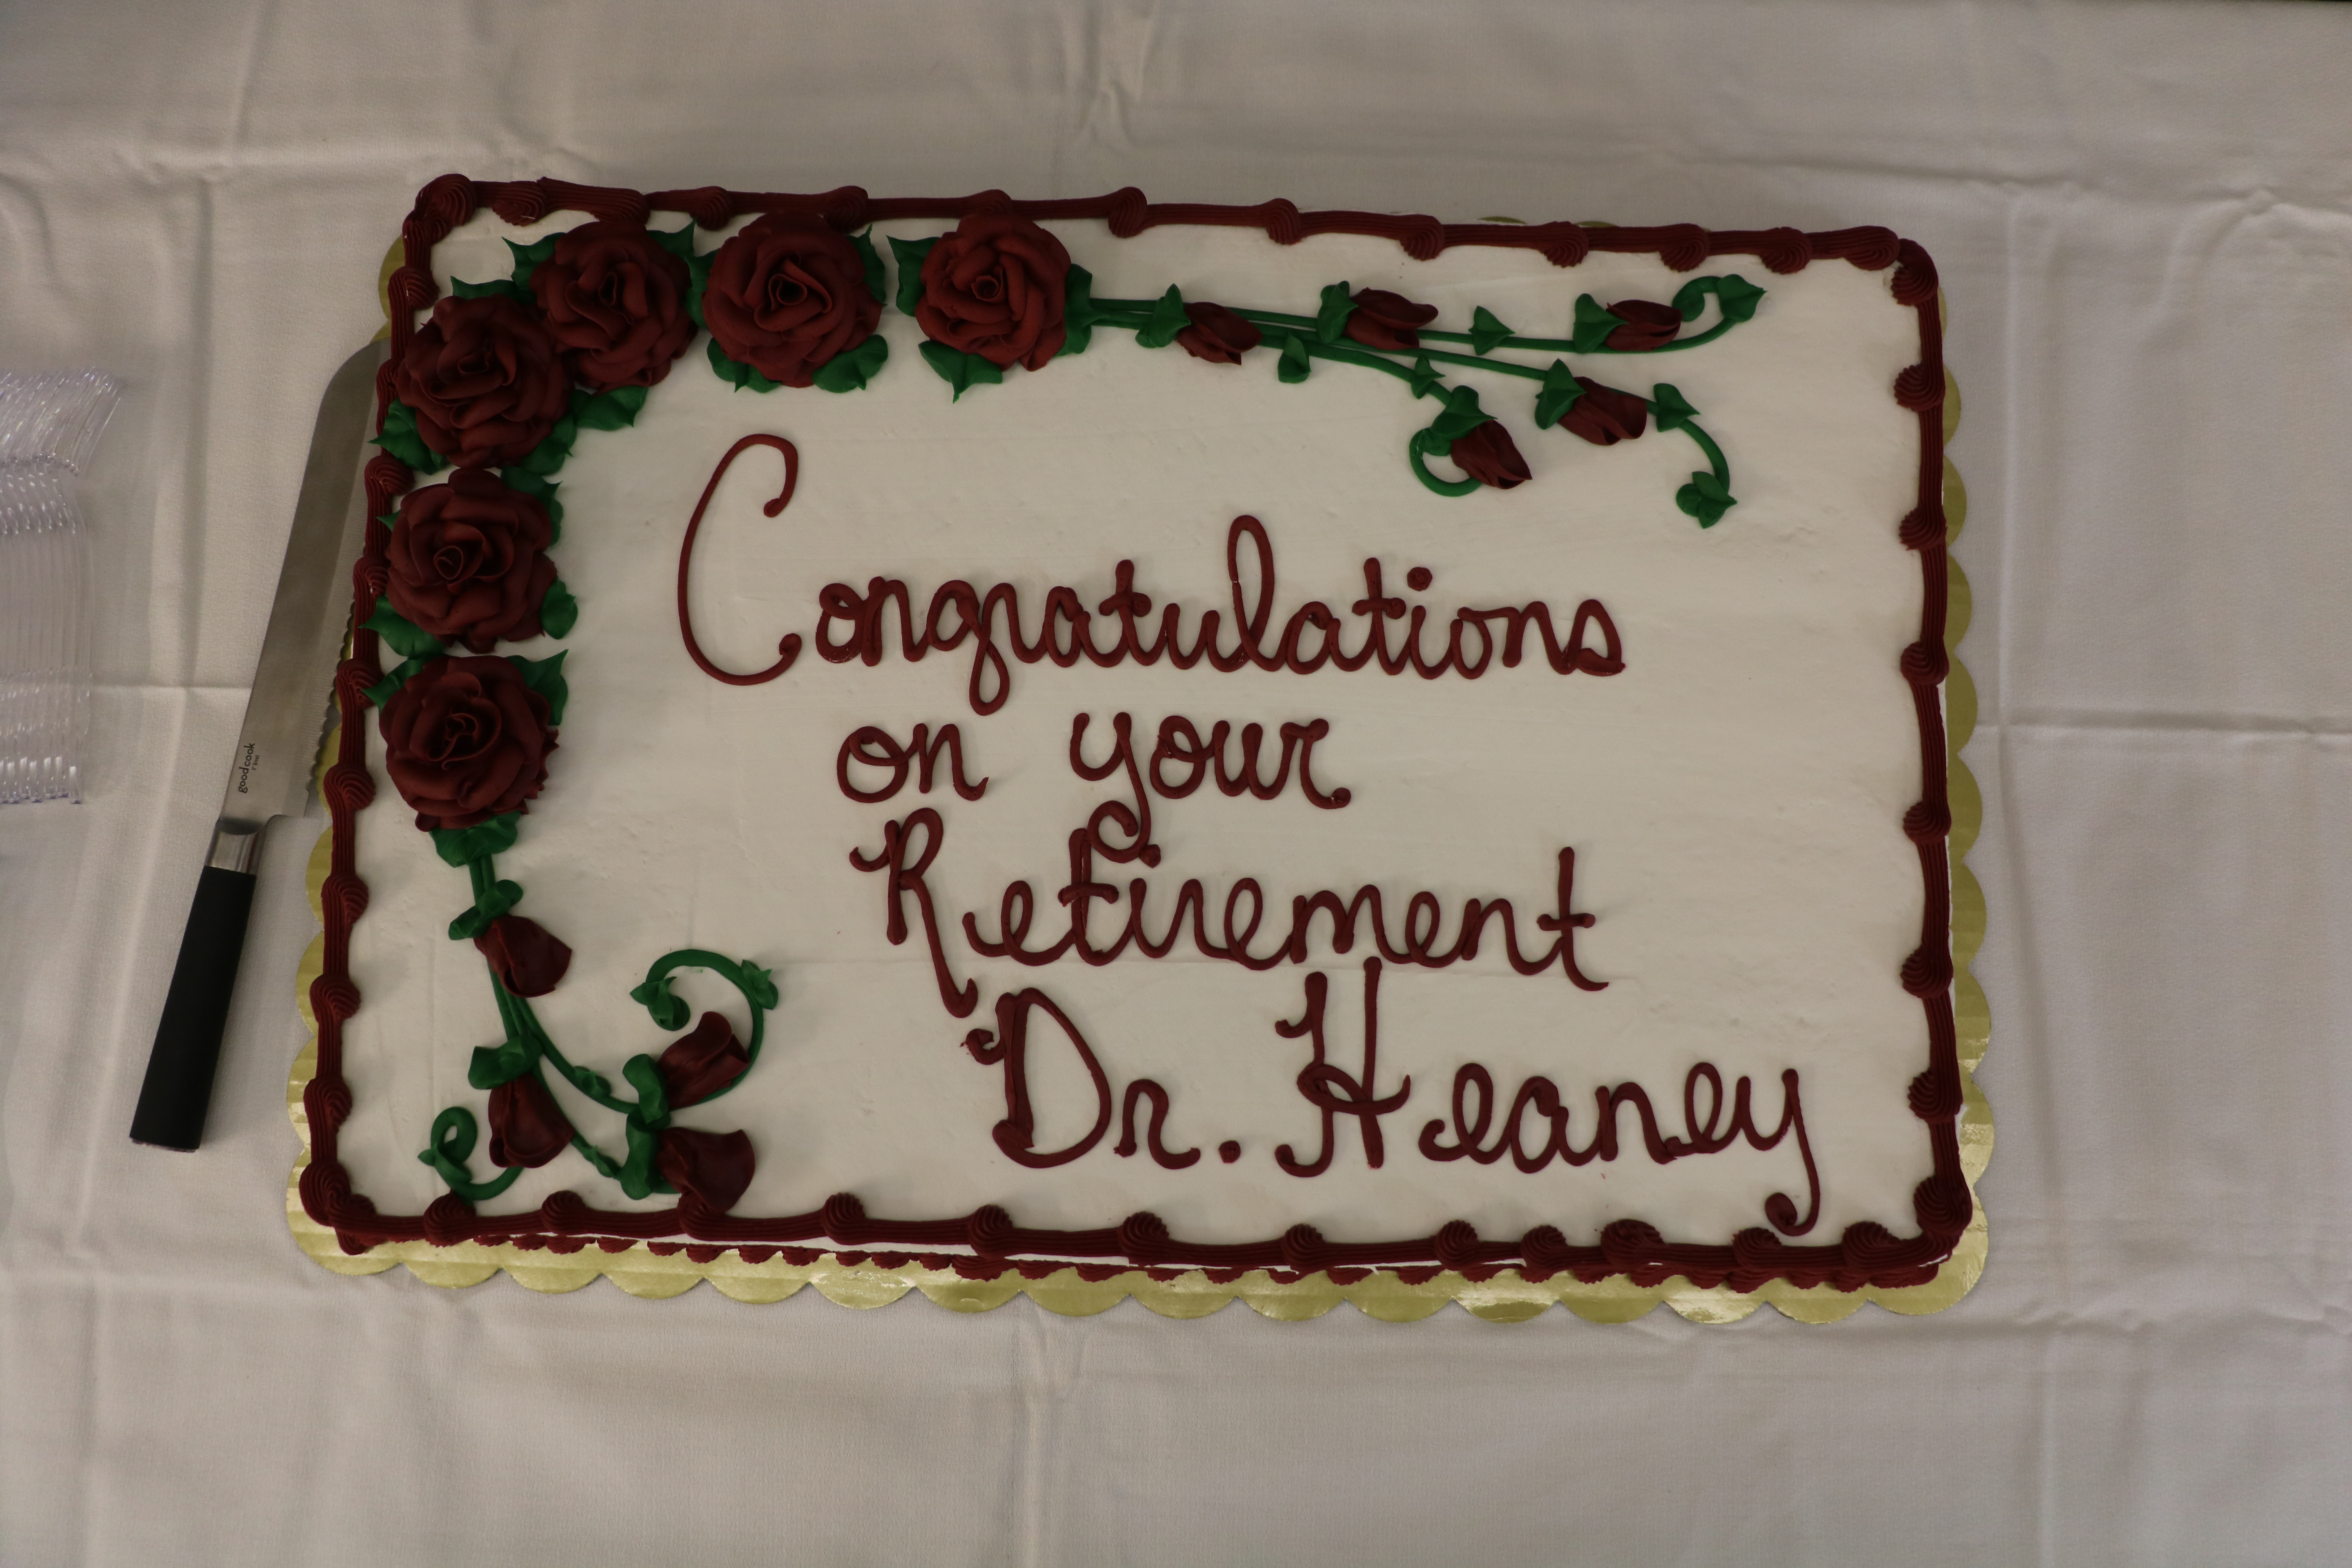 Dr. Michael Heaney Retires